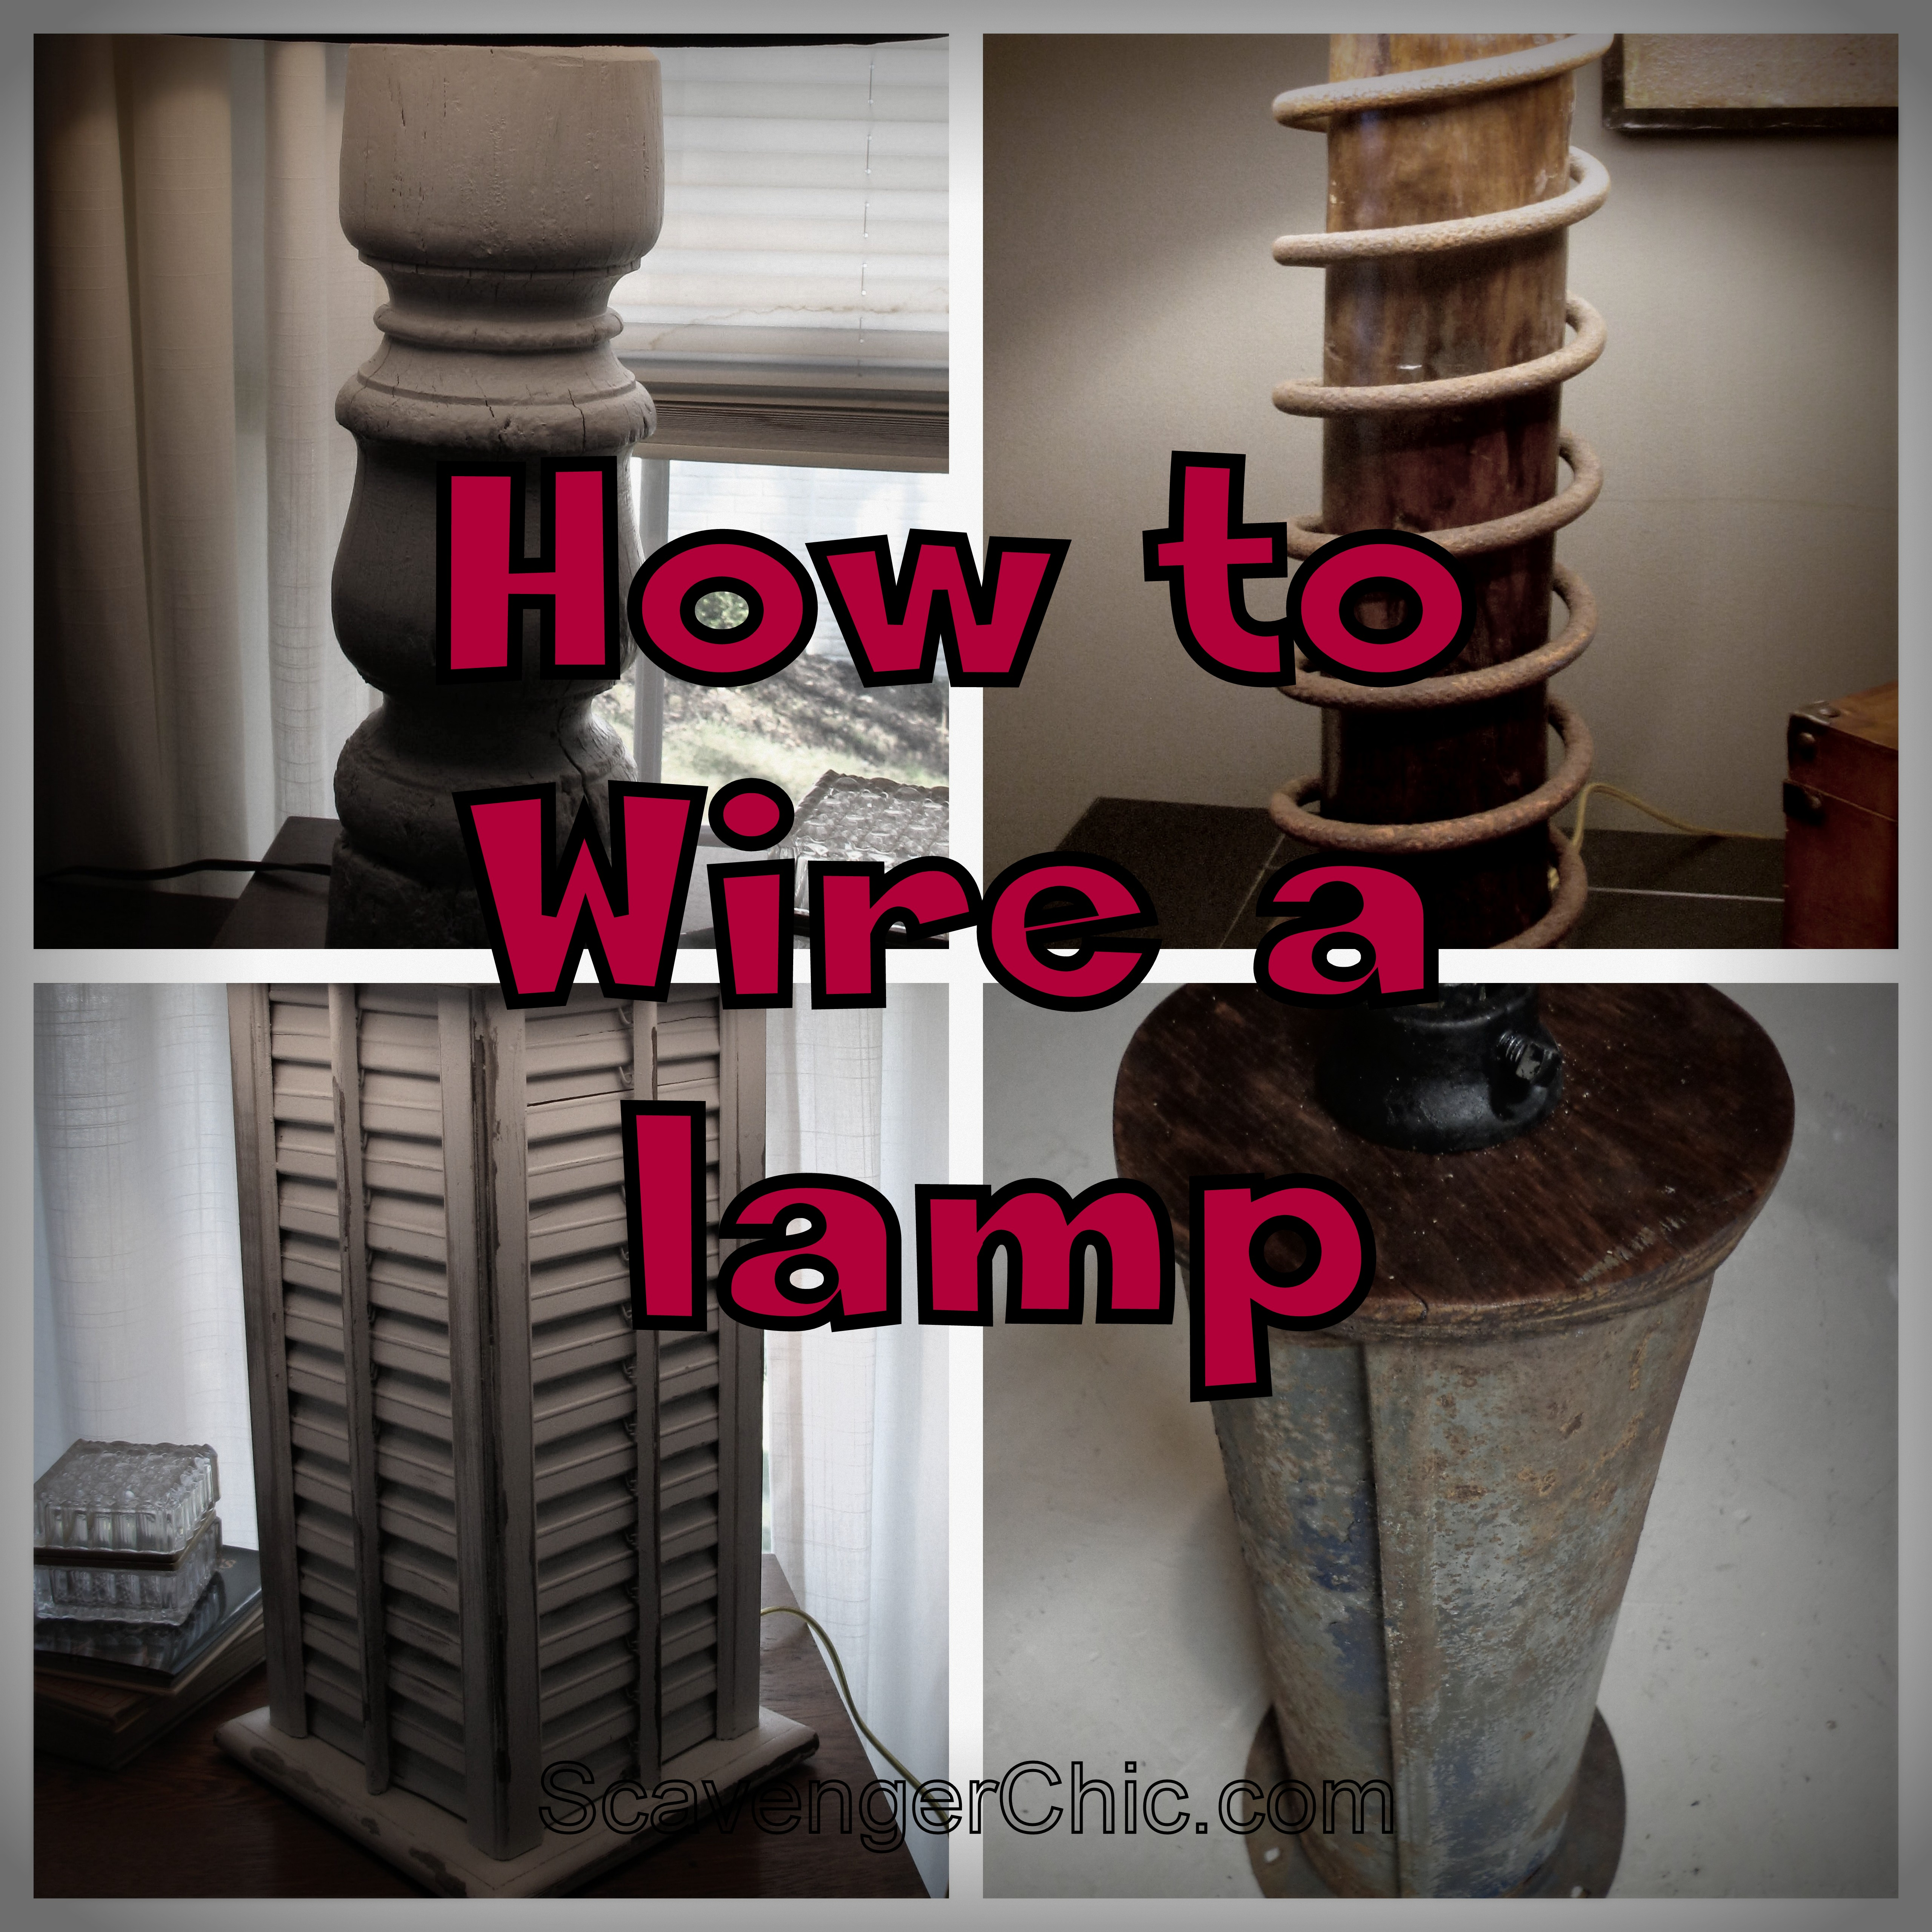 How To Wire A Lamp With Pictures Scavenger Chic